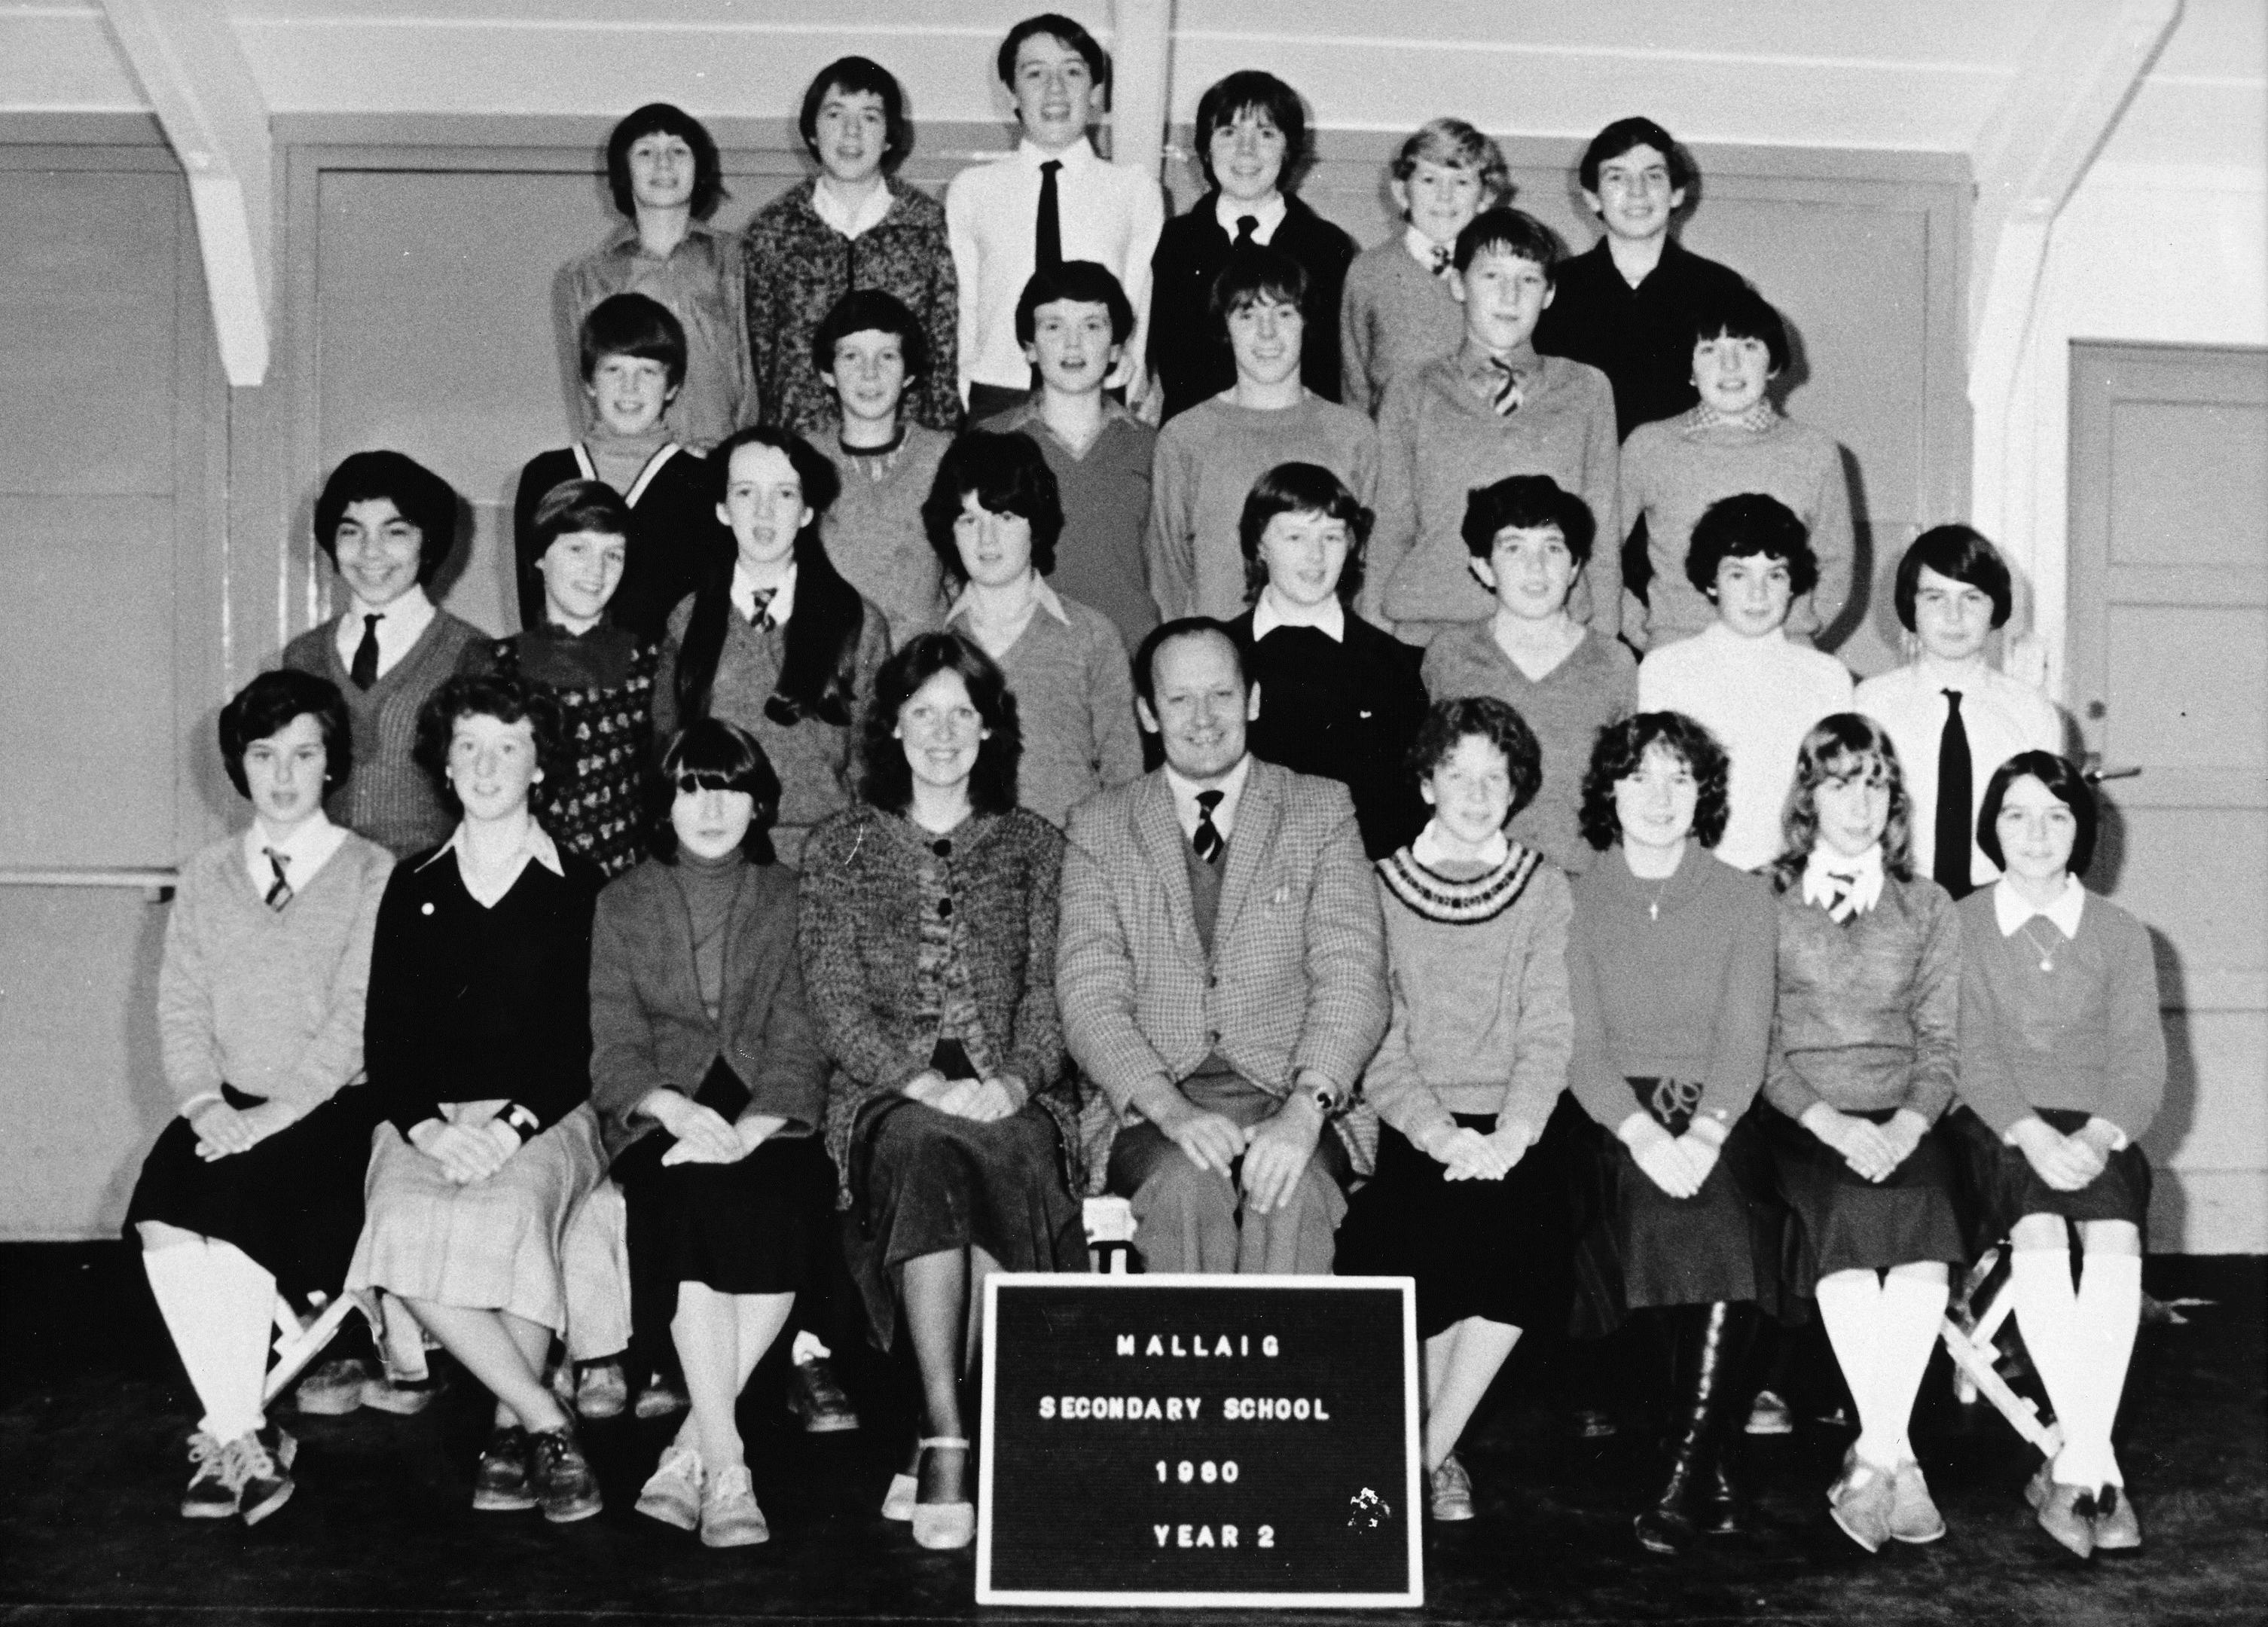 Photographer Donald MacLellan caught up with his old school mates as they reached their 50th birthdays and photographed them doing their jobs. He has created an exhibition showing all his classmates.